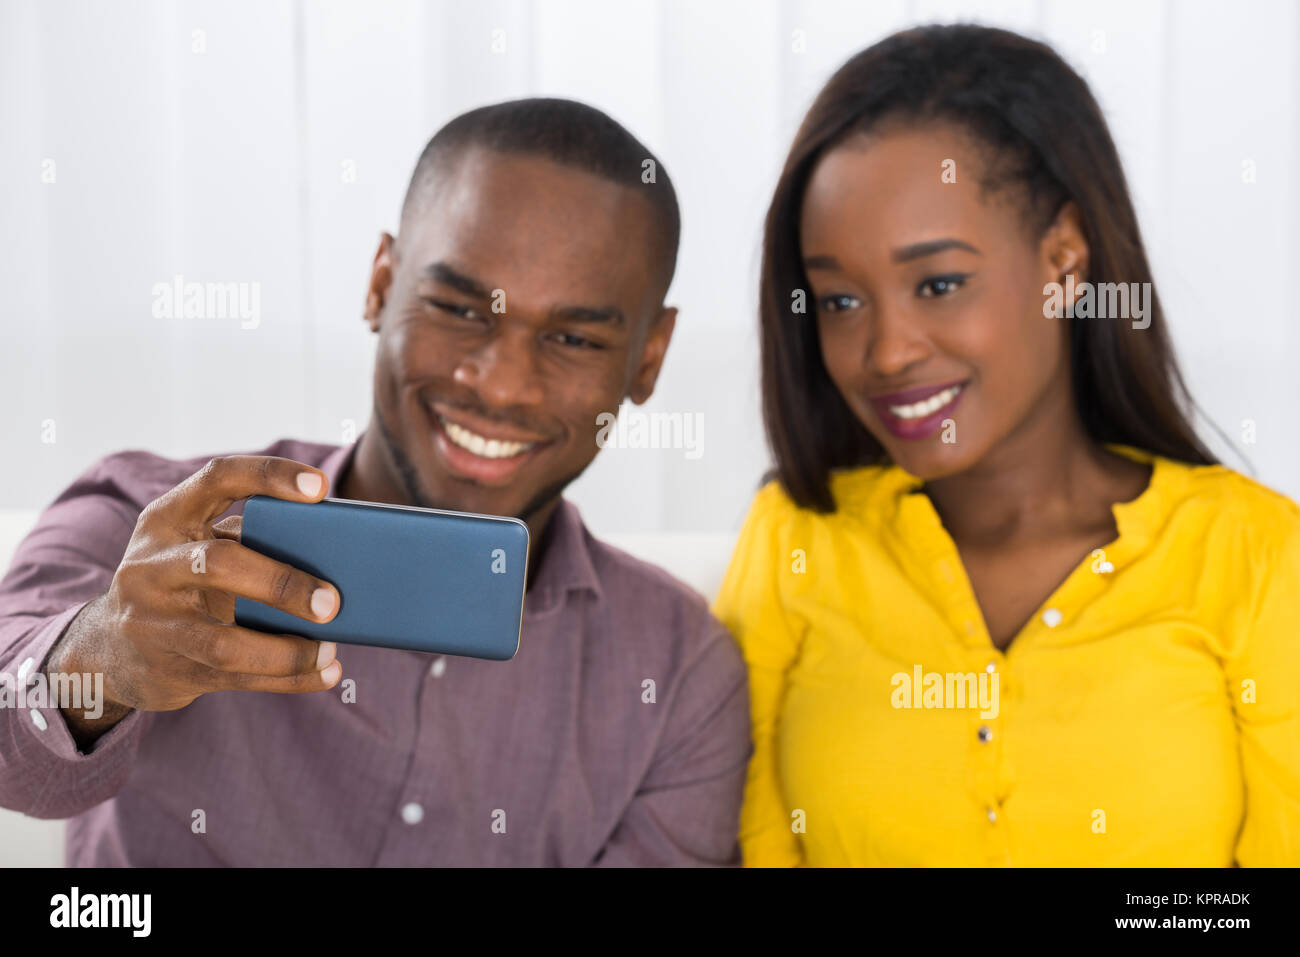 Couple Taking A Selfie With Mobile Phone - Stock Image